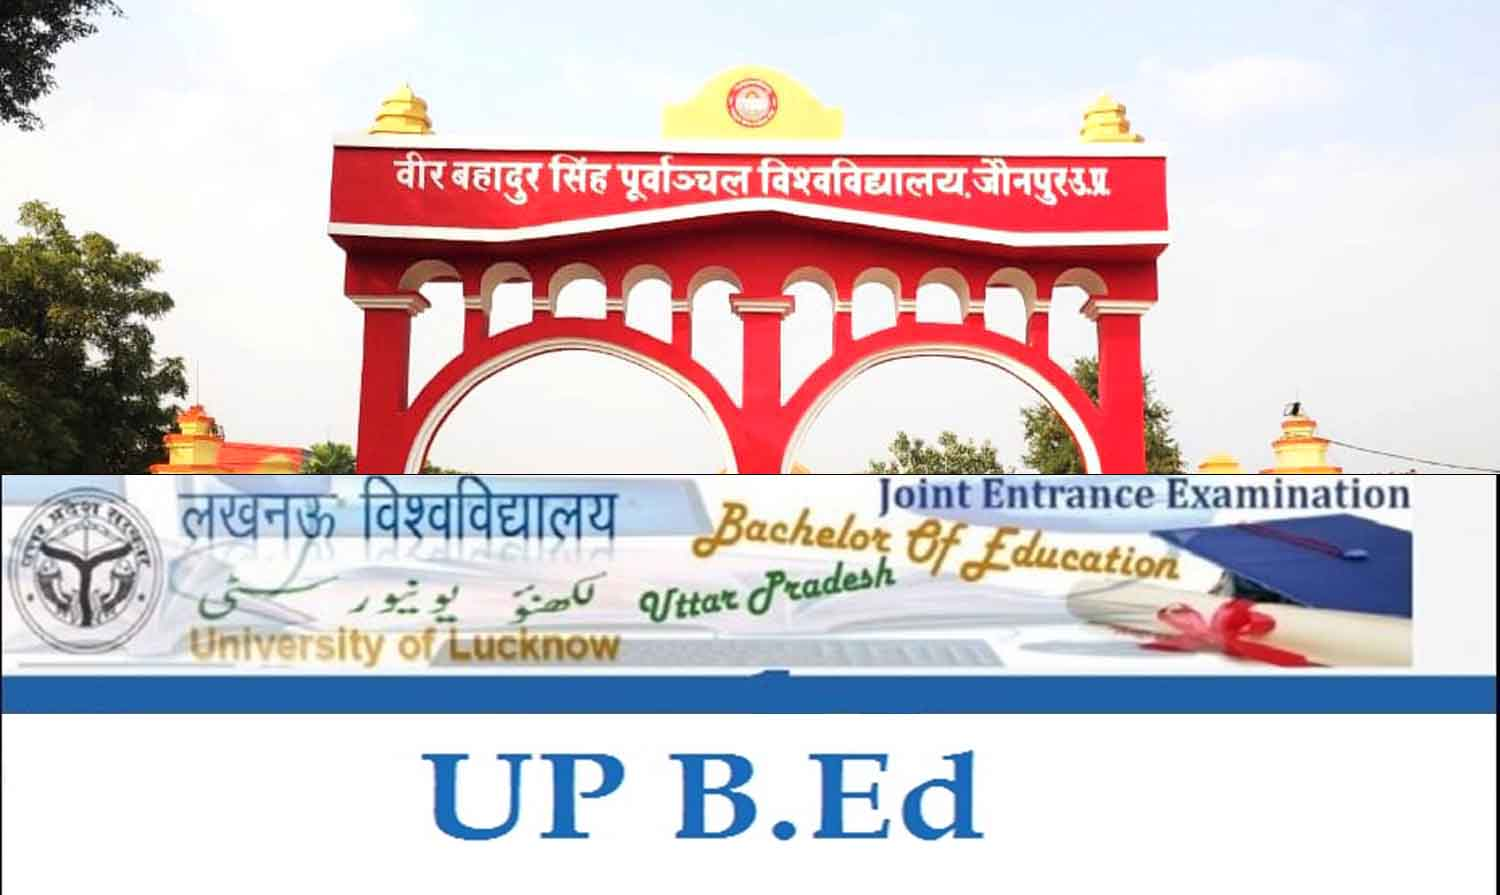 B.Ed entrance exam date postponed, know when next date will come